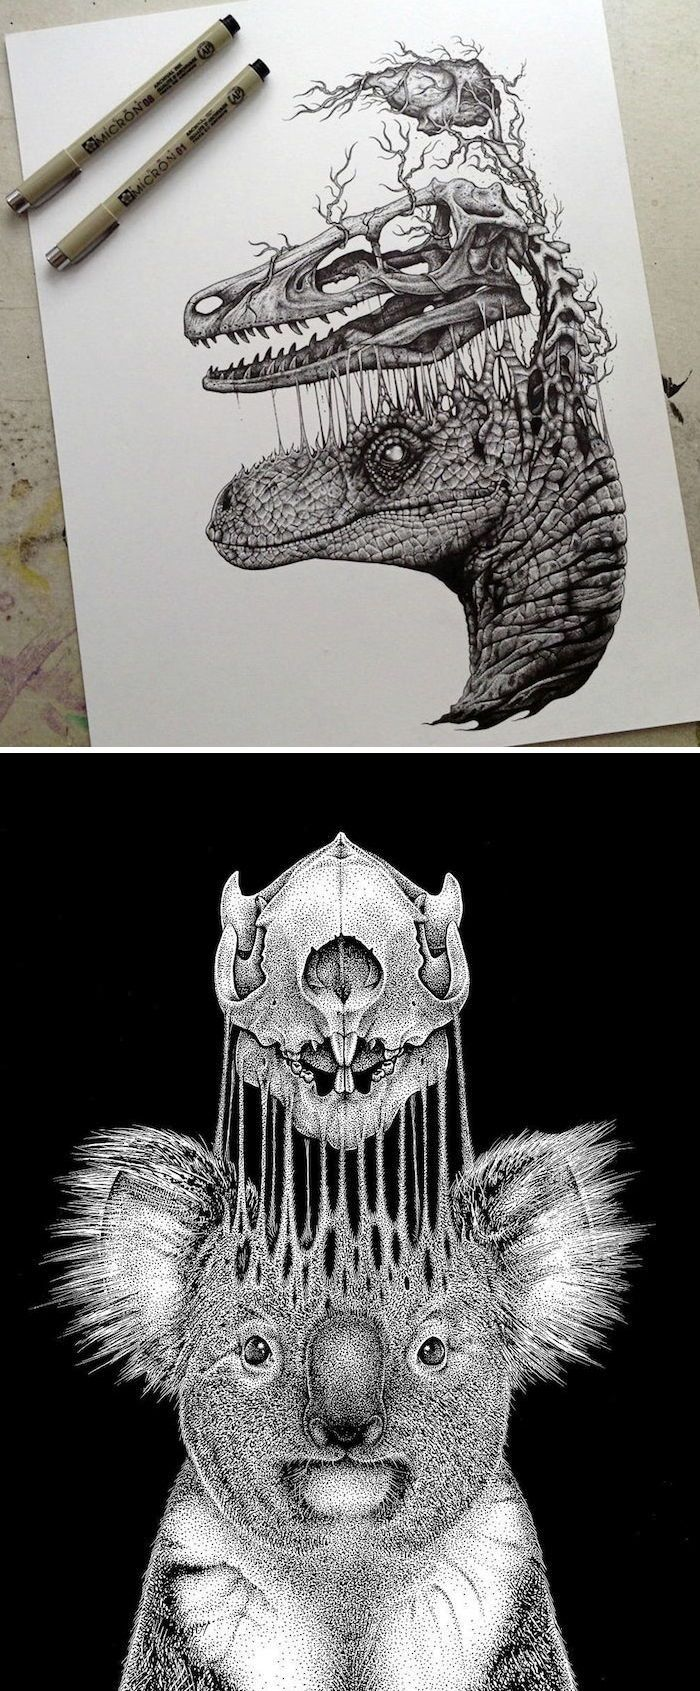 Paul Jackson's edgy illustrations often focus on the anatomy of animals—both dead and alive